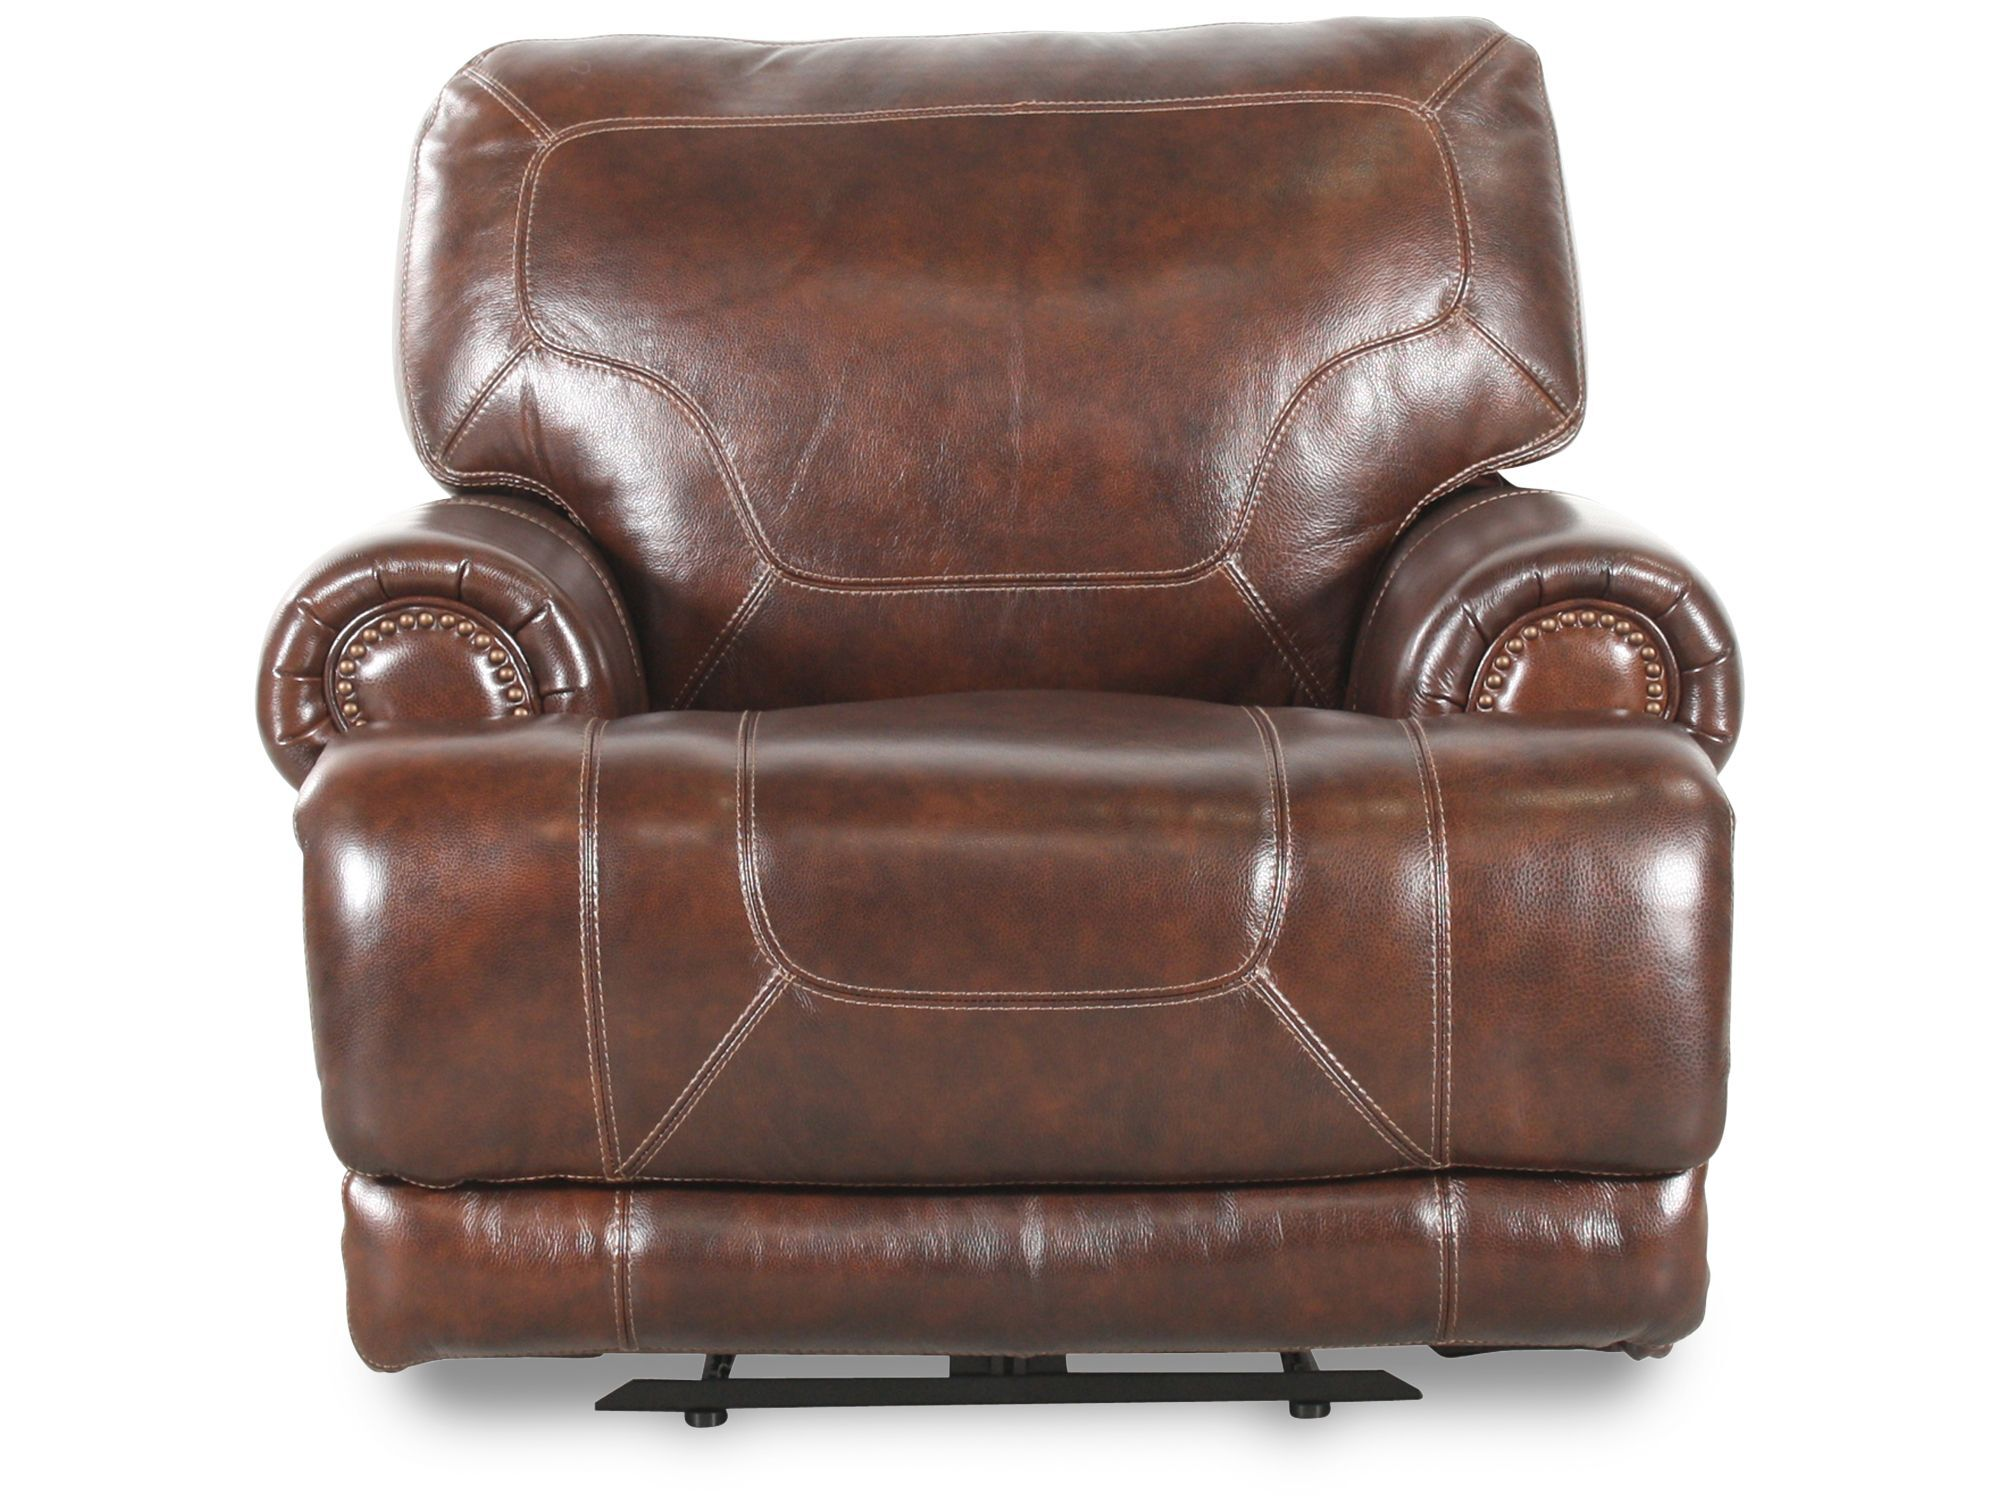 Simon Li Leather St&ede Coffee Recliner ...  sc 1 st  Mathis Brothers & Recliners - Reclining Chairs \u0026 Sofas | Mathis Brothers islam-shia.org